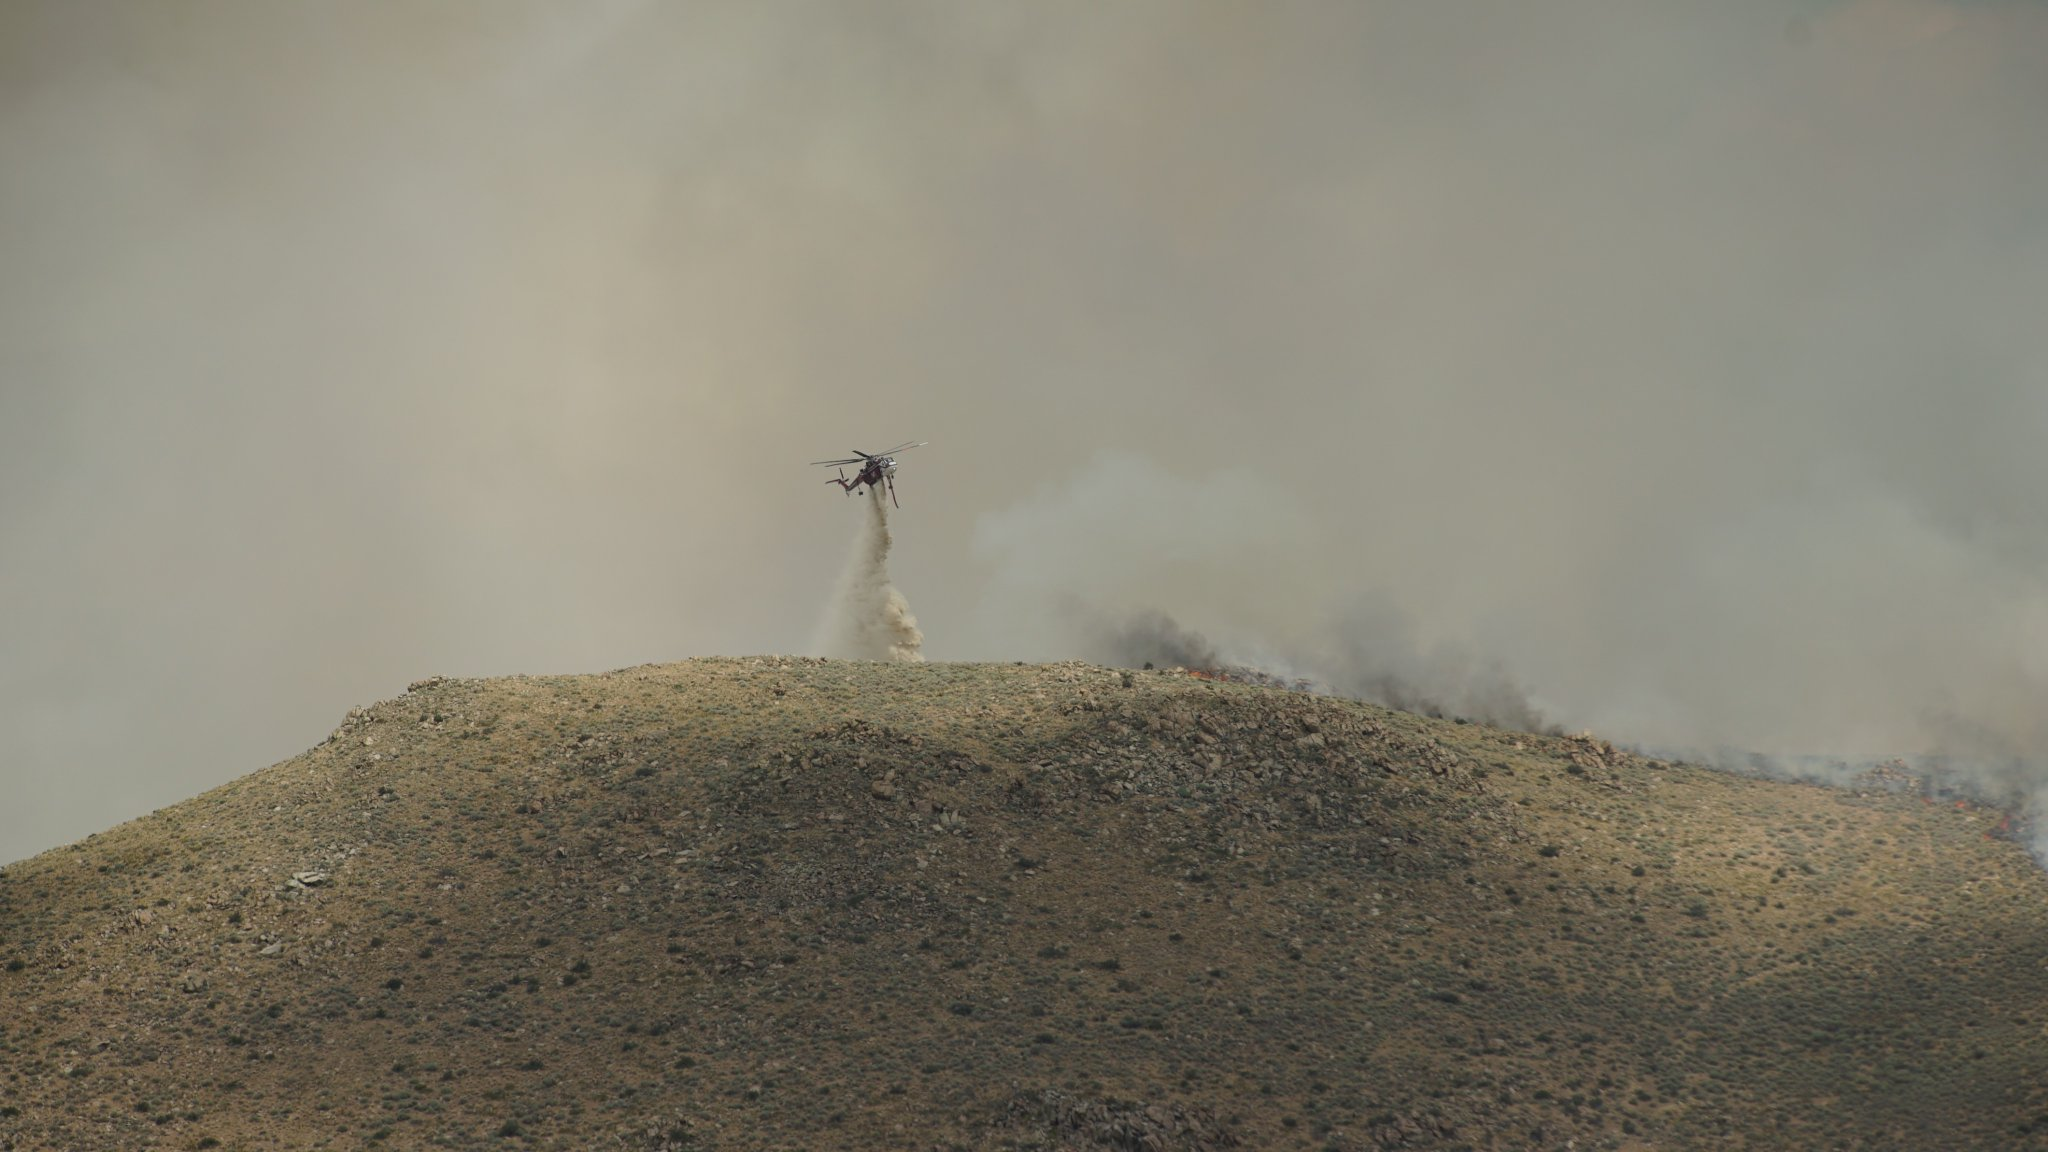 Air support for the Cold Springs Fire burning near Cold Springs and Stead. (KRNV)